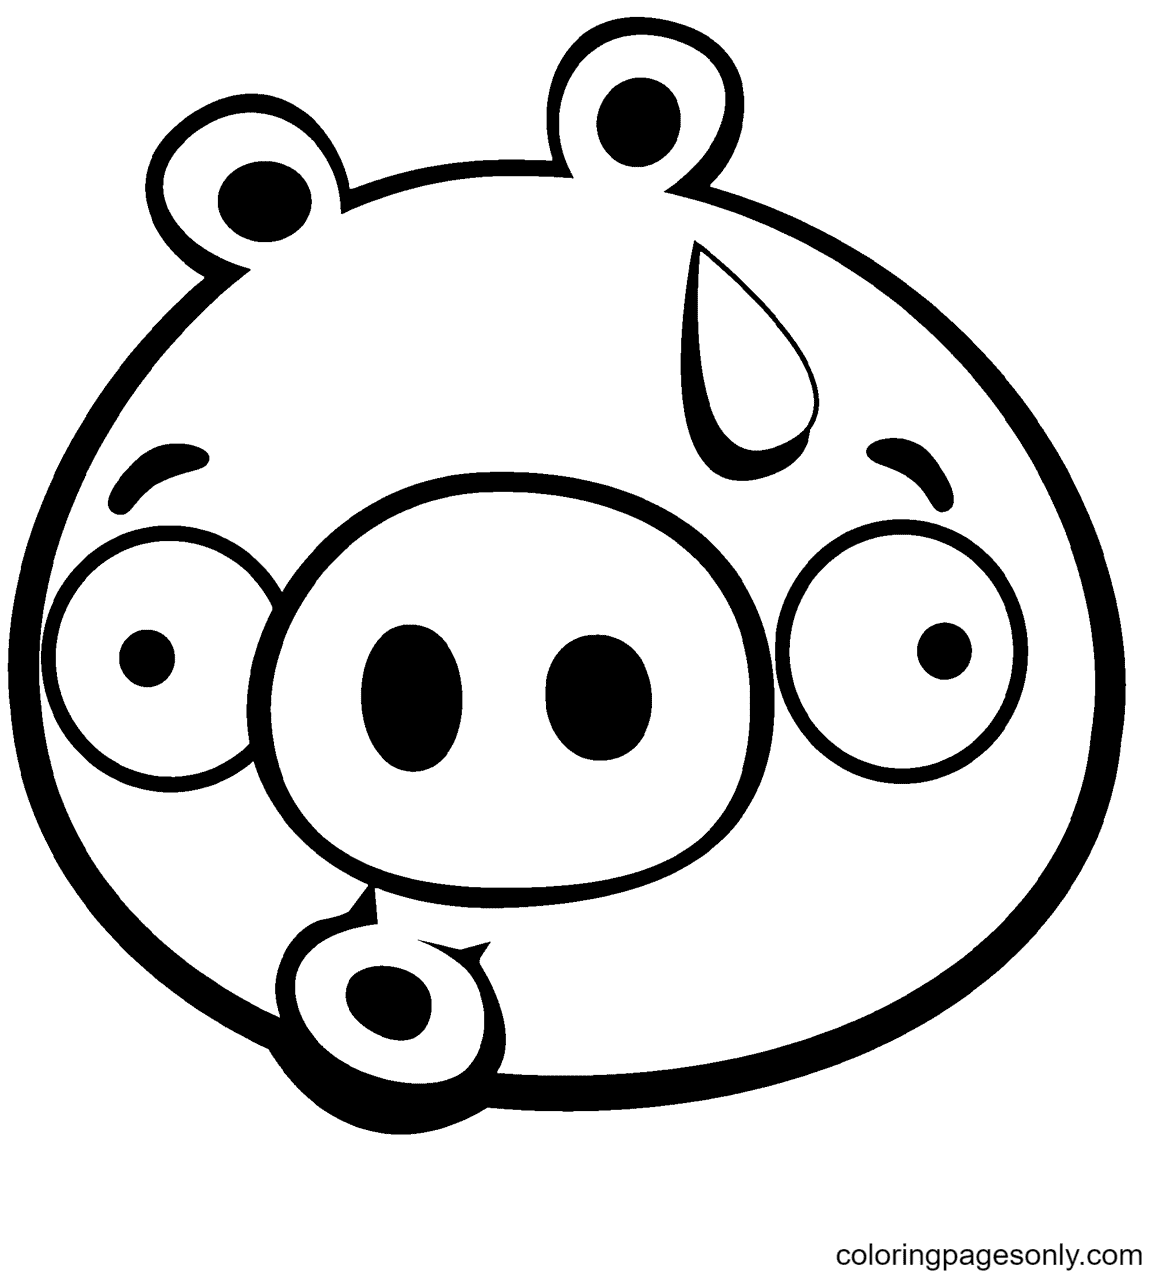 Discouraged Minion Pig Coloring Page